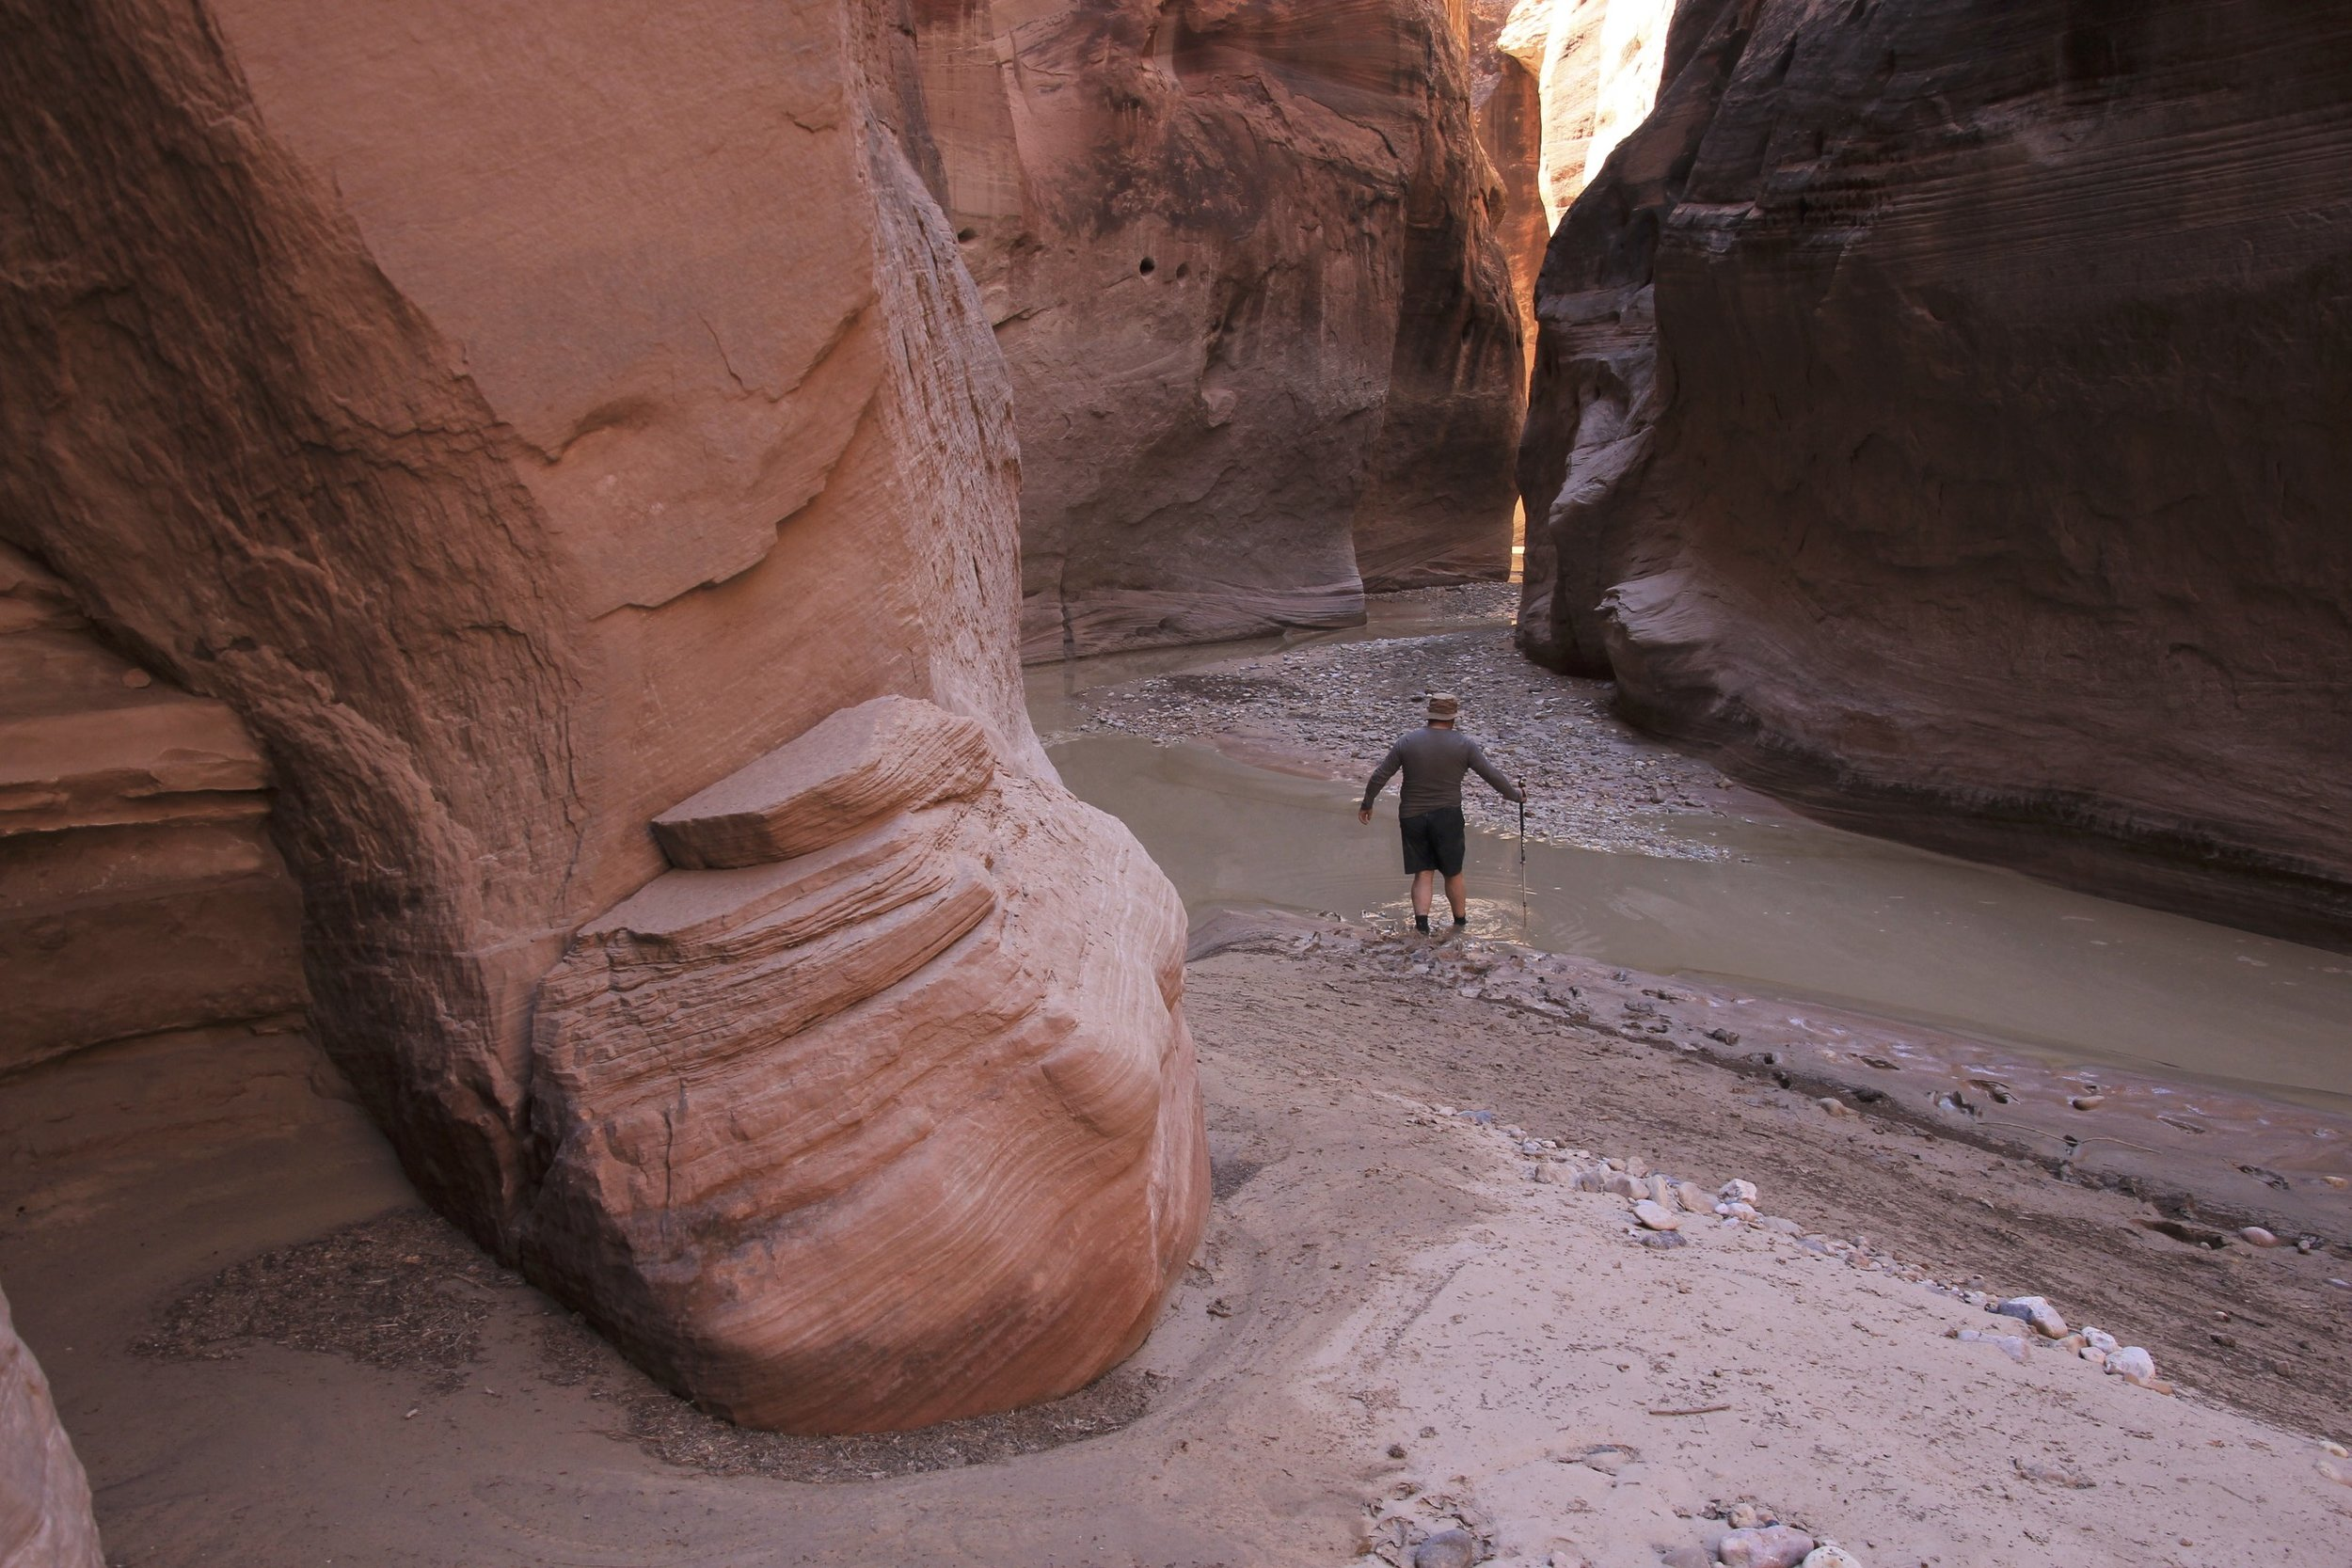 Exploring the Paria Canyon. We left our packs behind and during our exploration the river flow quadrupled. The packs got washed away. We found them downstream from where we left them. One of them had a snake stuck in it. When the river is flowing high, the snakes flow with it :-). After our hike, we received a lecture from a local on the types of snakes in the canyon. Apparently, the bad one has eyes of a cat. It is hard to check when you are freaking out after finding one in your pack!